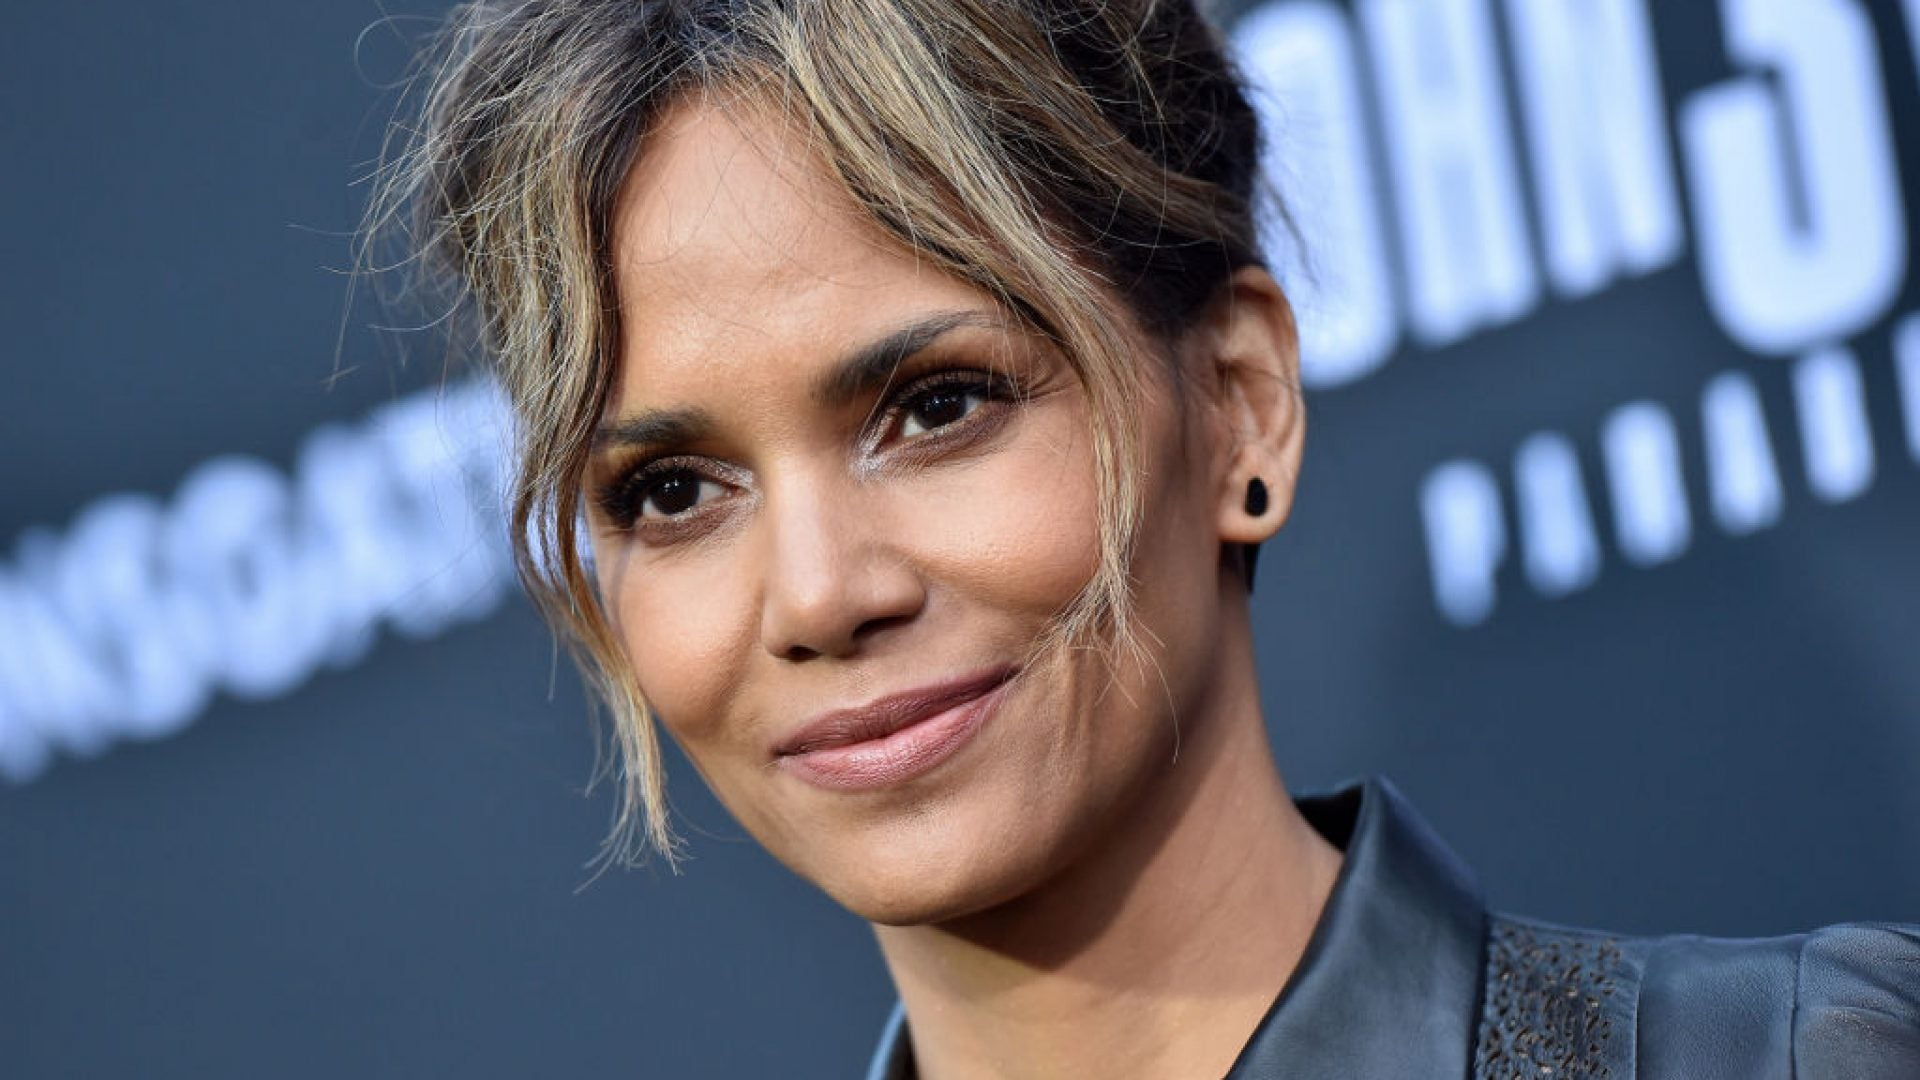 Halle Berry's Directorial Debut, 'Bruised' Gets $20 Million Netflix Deal